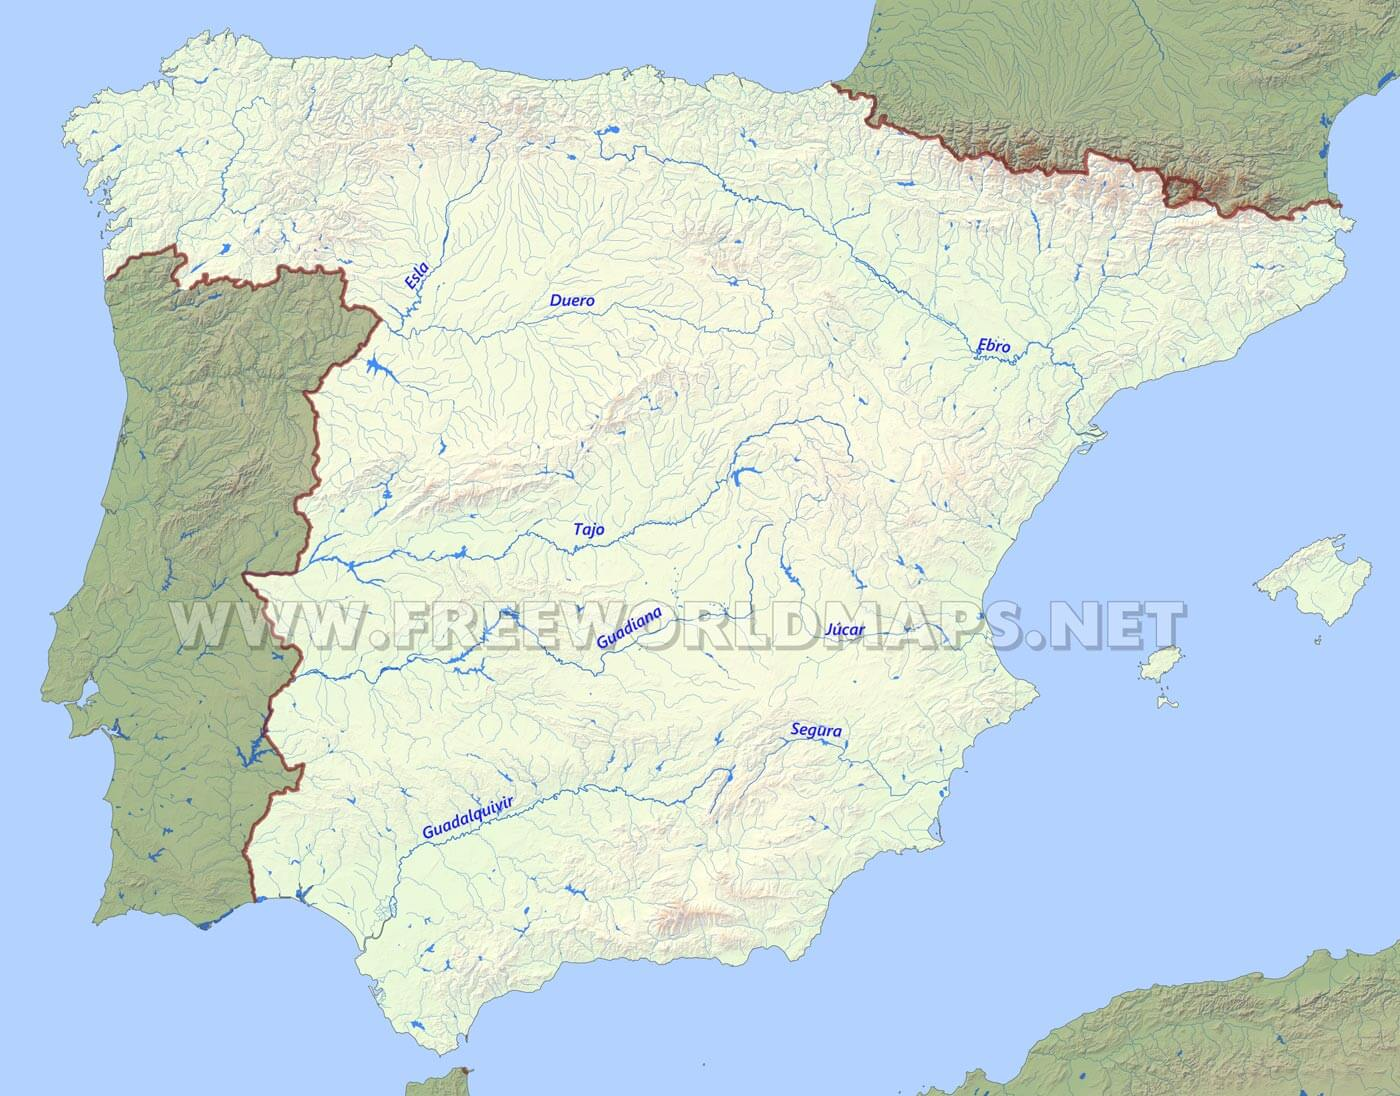 Spain Physical Map on map of austria in spanish, map of dominican republic in spanish, map of spanish speaking world, map of equatorial guinea in spanish, map of china in spanish, map of continents in spanish, map of cities in espana, map of countries that speak spanish, espana capital in spanish, map of united states in spanish, map of puerto rico in spanish, map of egypt in spanish, map of north america in spanish, map of trinidad in spanish, map of barcelona in spanish, map of paraguay in spanish, map of spanish speaking countries, capital of venezuela in spanish, map of england in 1500, map of the world in spanish,